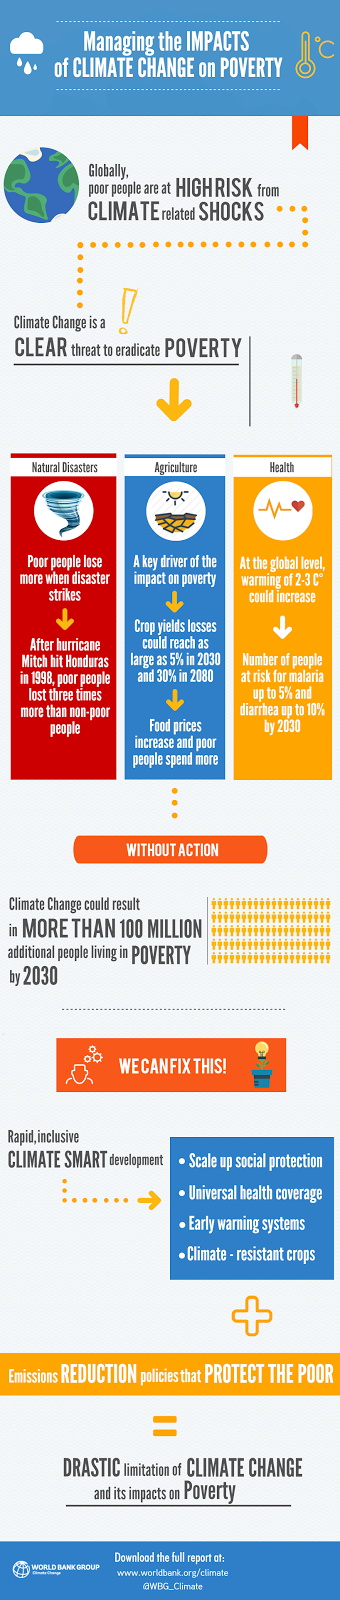 http://www.worldbank.org/en/news/feature/2015/11/08/rapid-climate-informed-development-needed-to-keep-climate-change-from-pushing-more-than-100-million-people-into-poverty-by-2030